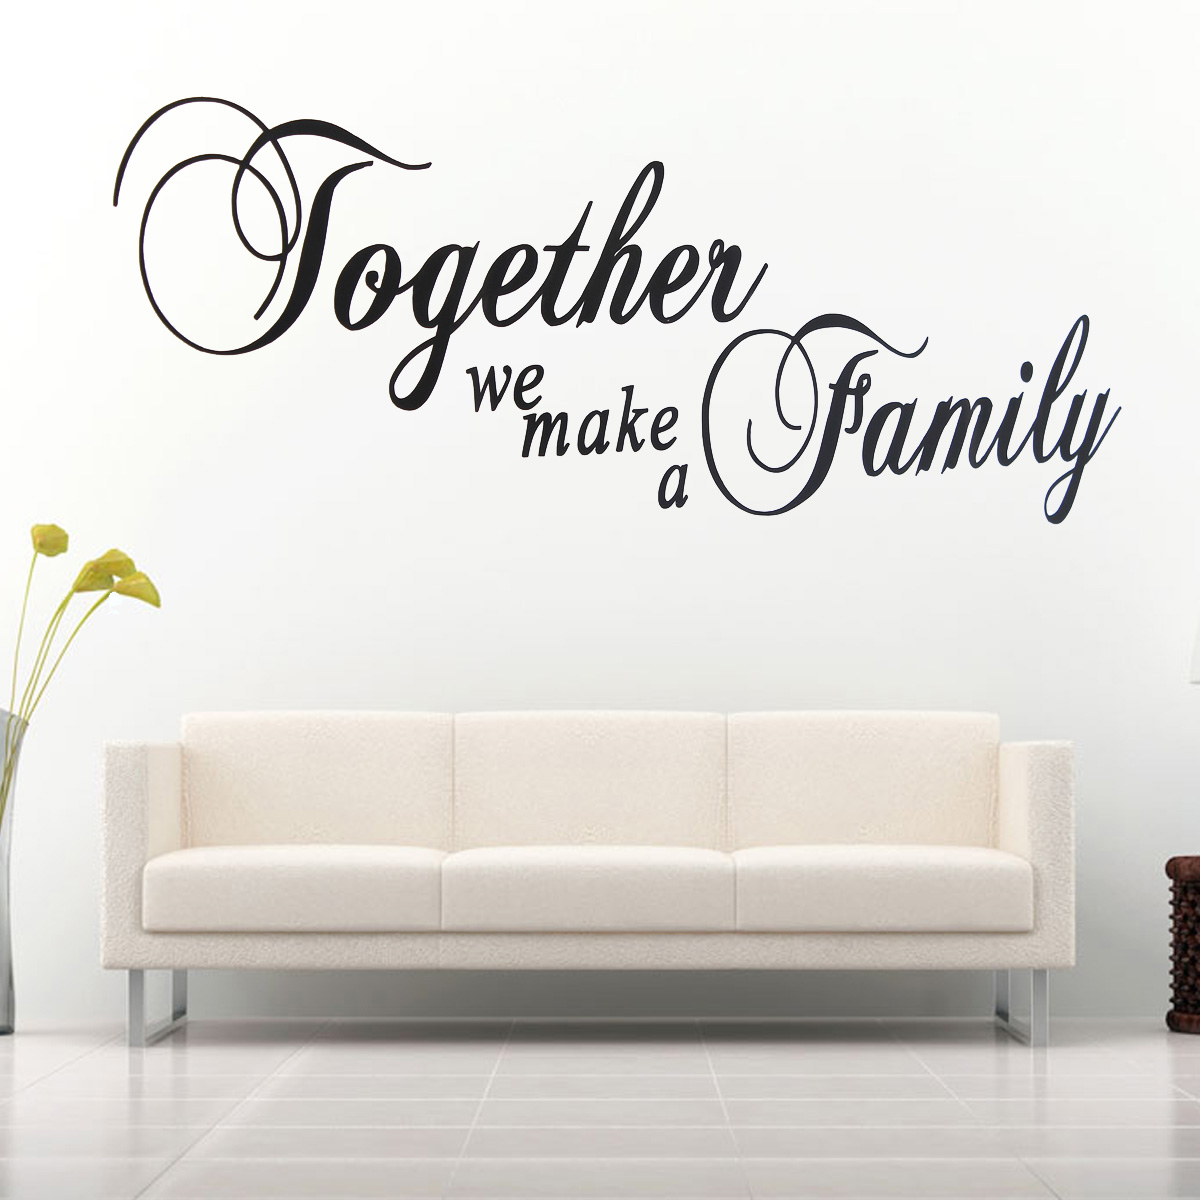 wandtattoo aufkleber wandsticker spruch schlafzimmer. Black Bedroom Furniture Sets. Home Design Ideas